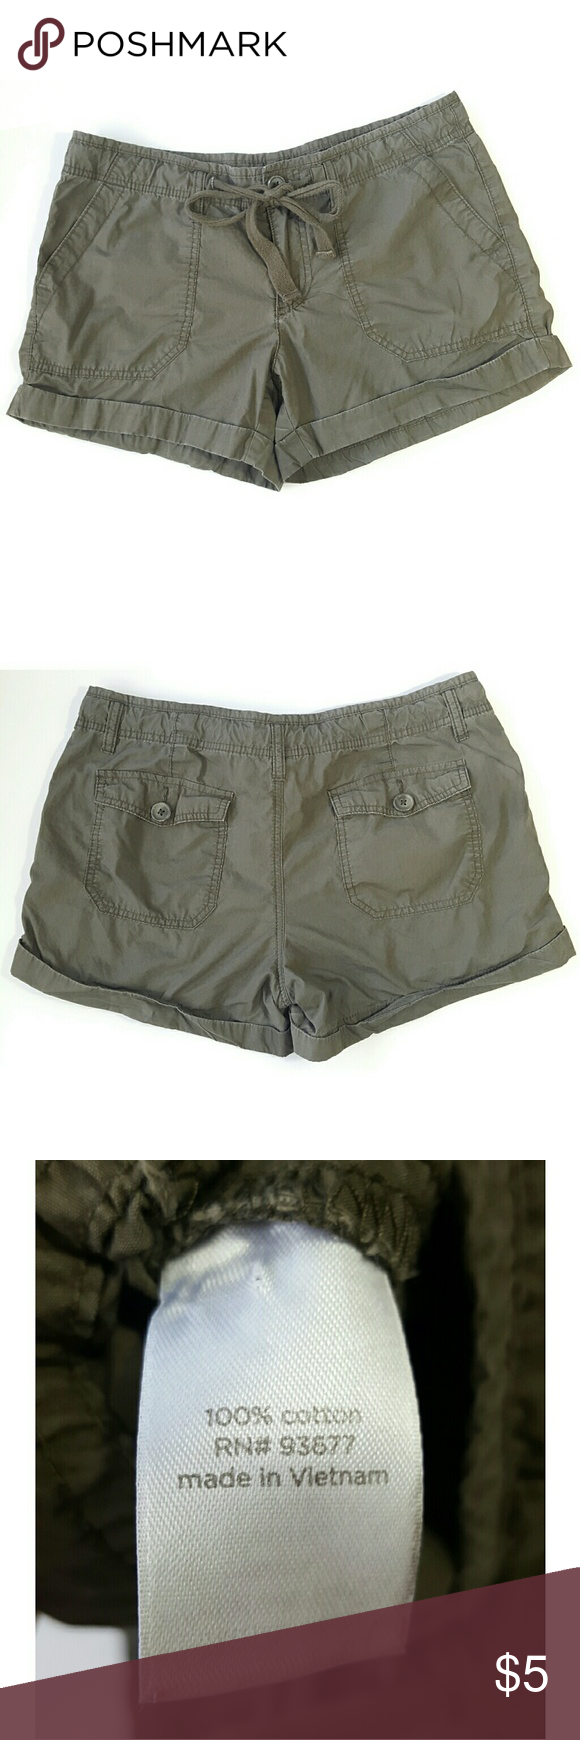 SALE Jcp Olive Green Drawstring Shorts Jcp, olive green color, drawstring, no holes or stains, good condition, size 10. jcpenney Shorts